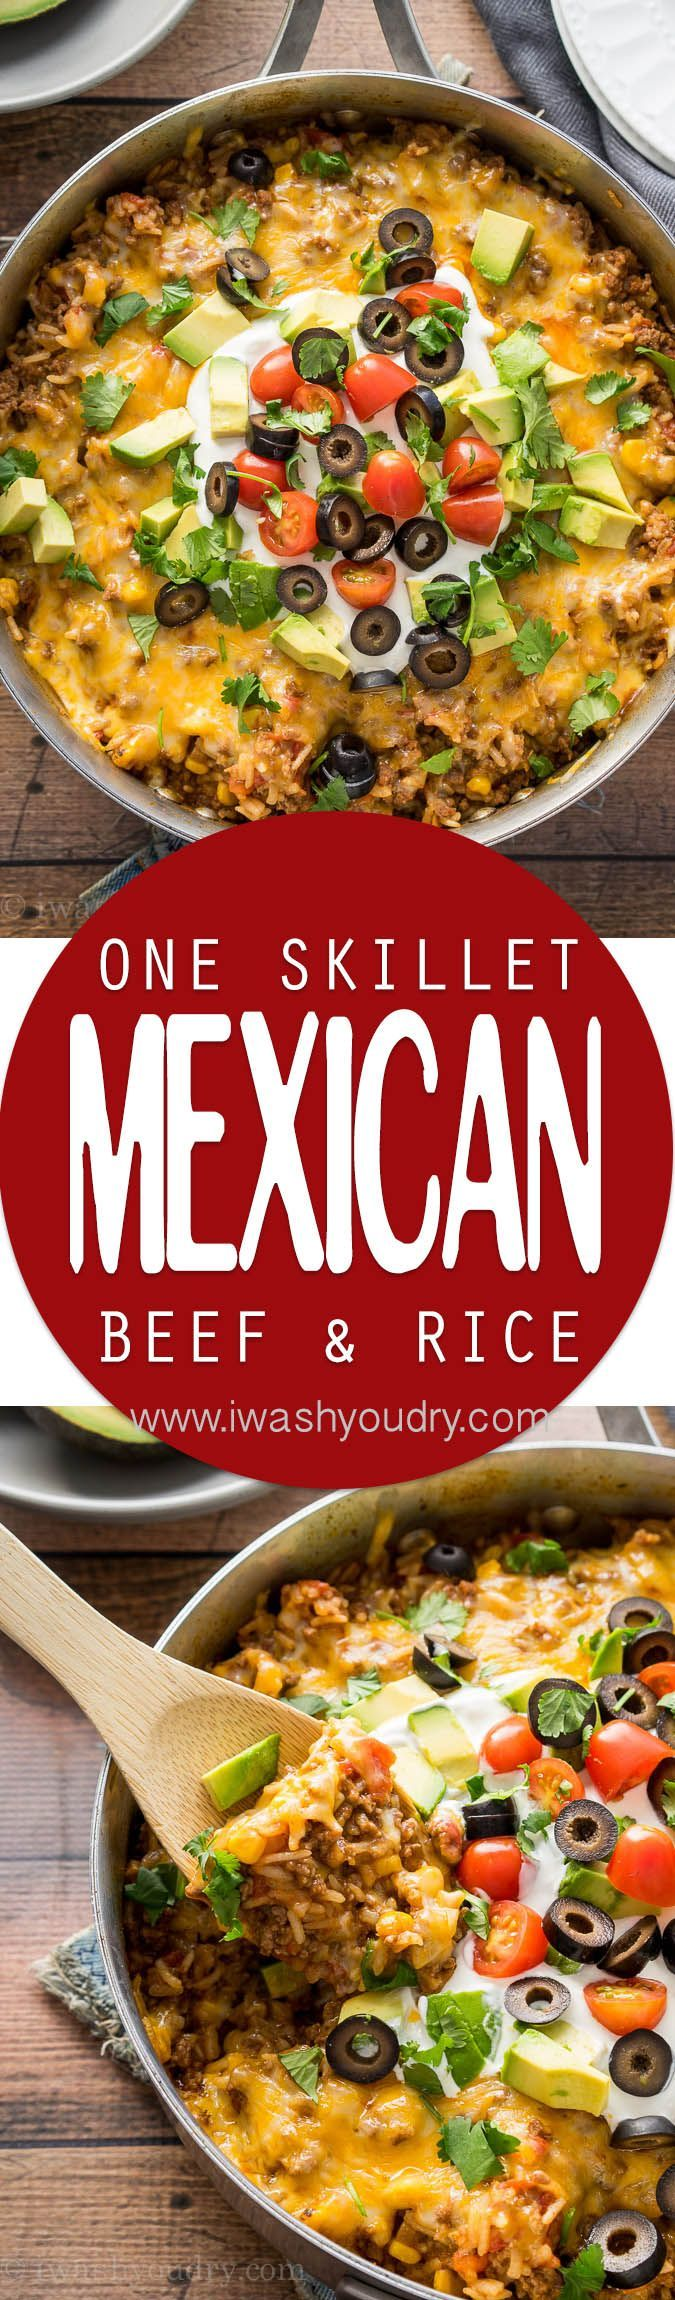 My whole family LOVED this One Skillet Mexican Beef and Rice dinner recipe! Super quick and easy and we ate the leftovers wrapped up in tortillas!